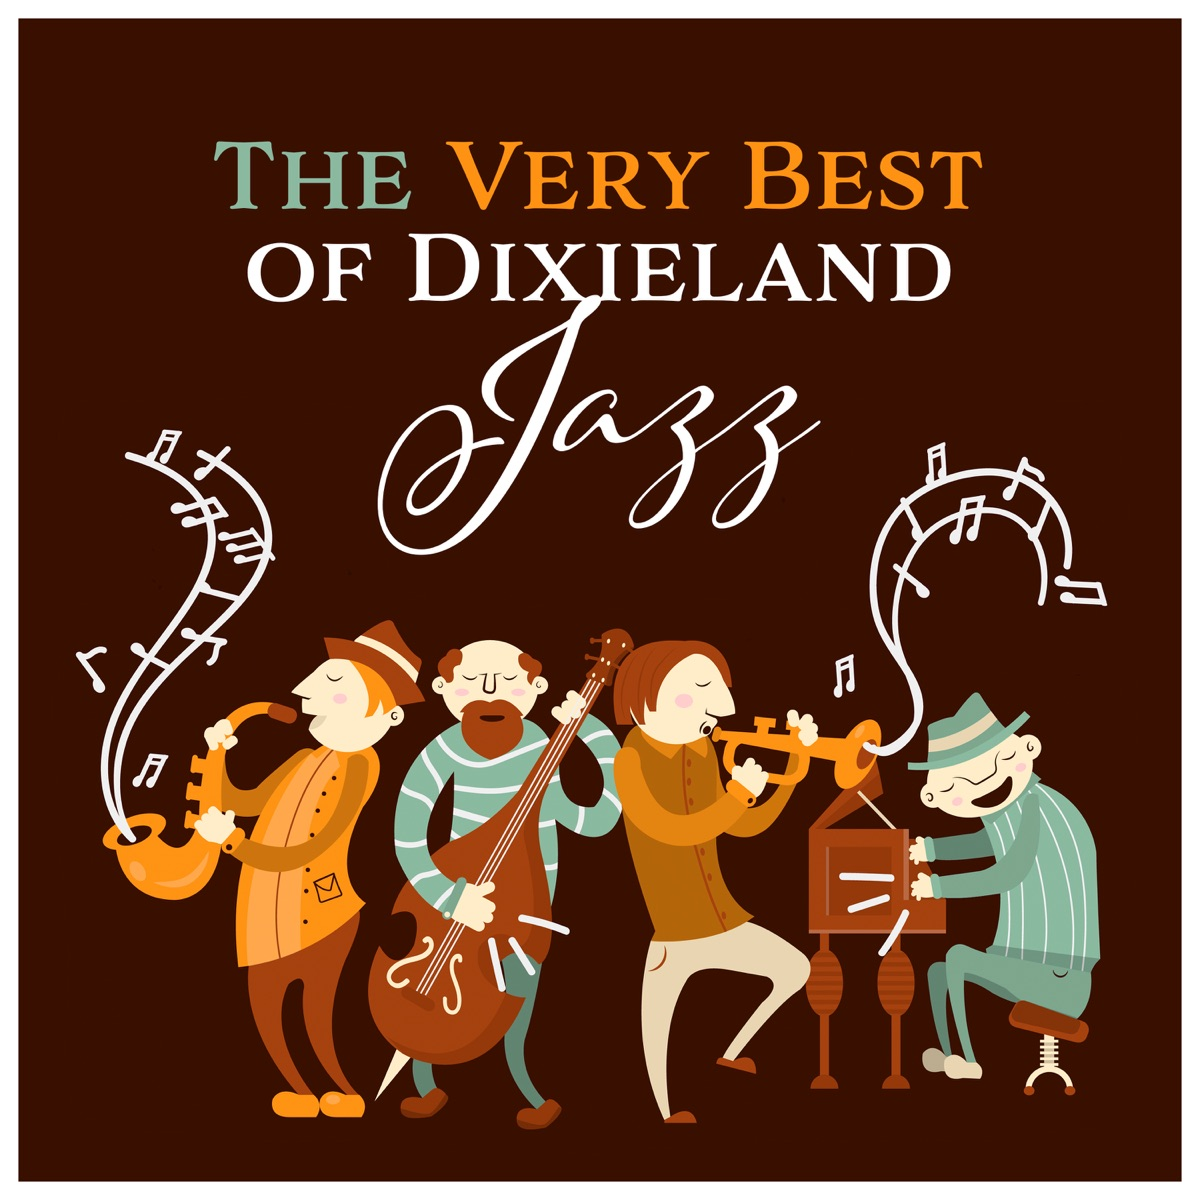 The Very Best of Dixieland Jazz Album Cover by Instrumental Jazz